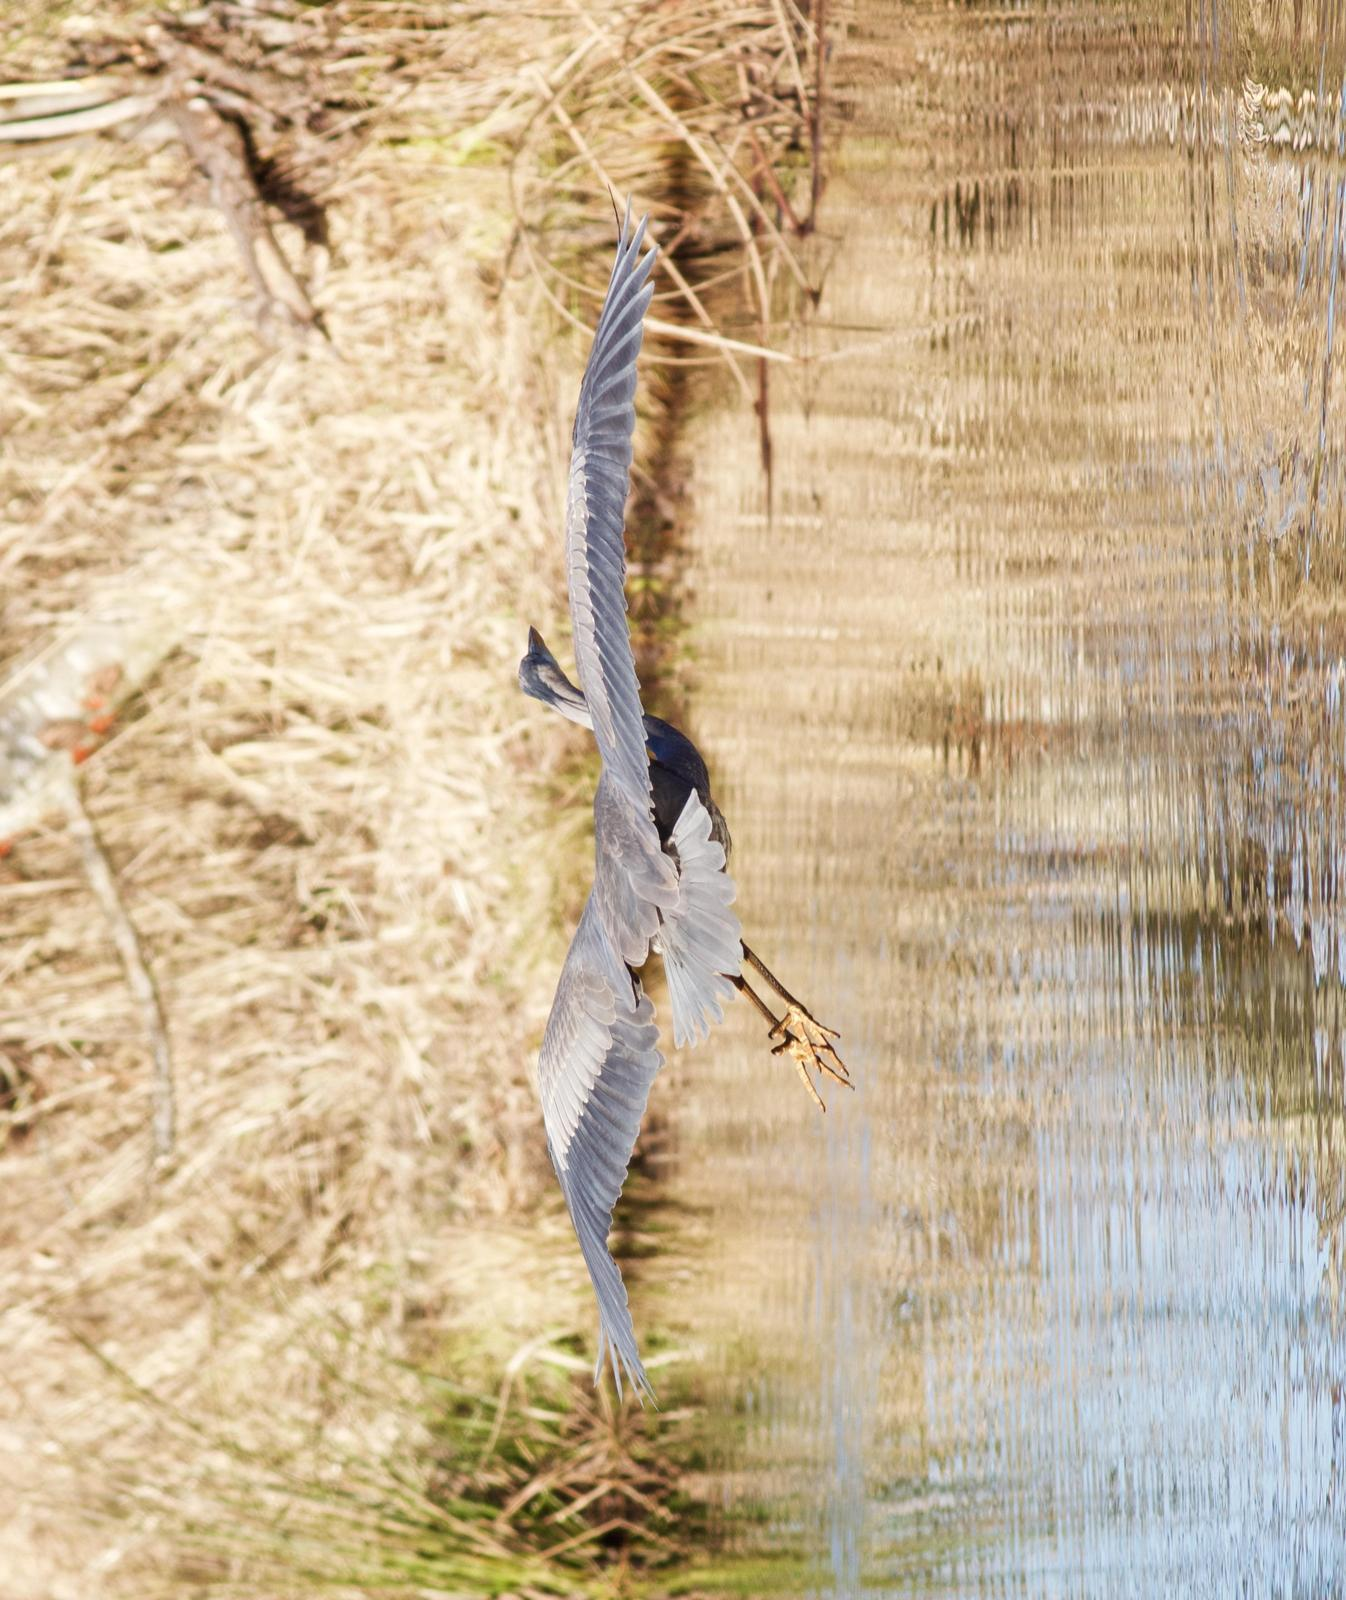 Great Blue Heron Photo by Kathryn Keith